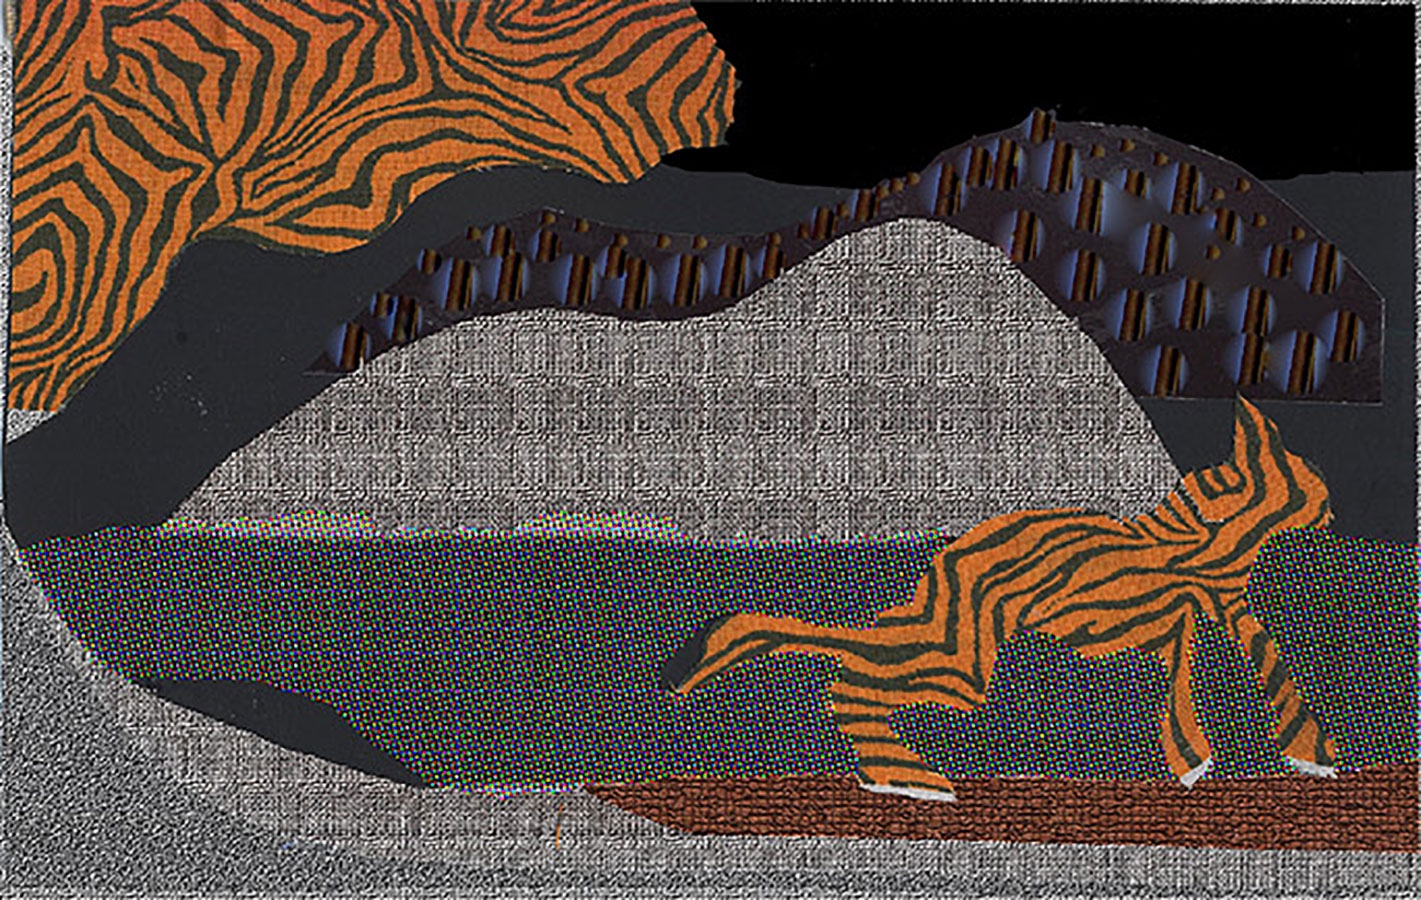 Tiger-collage-texturedz-final